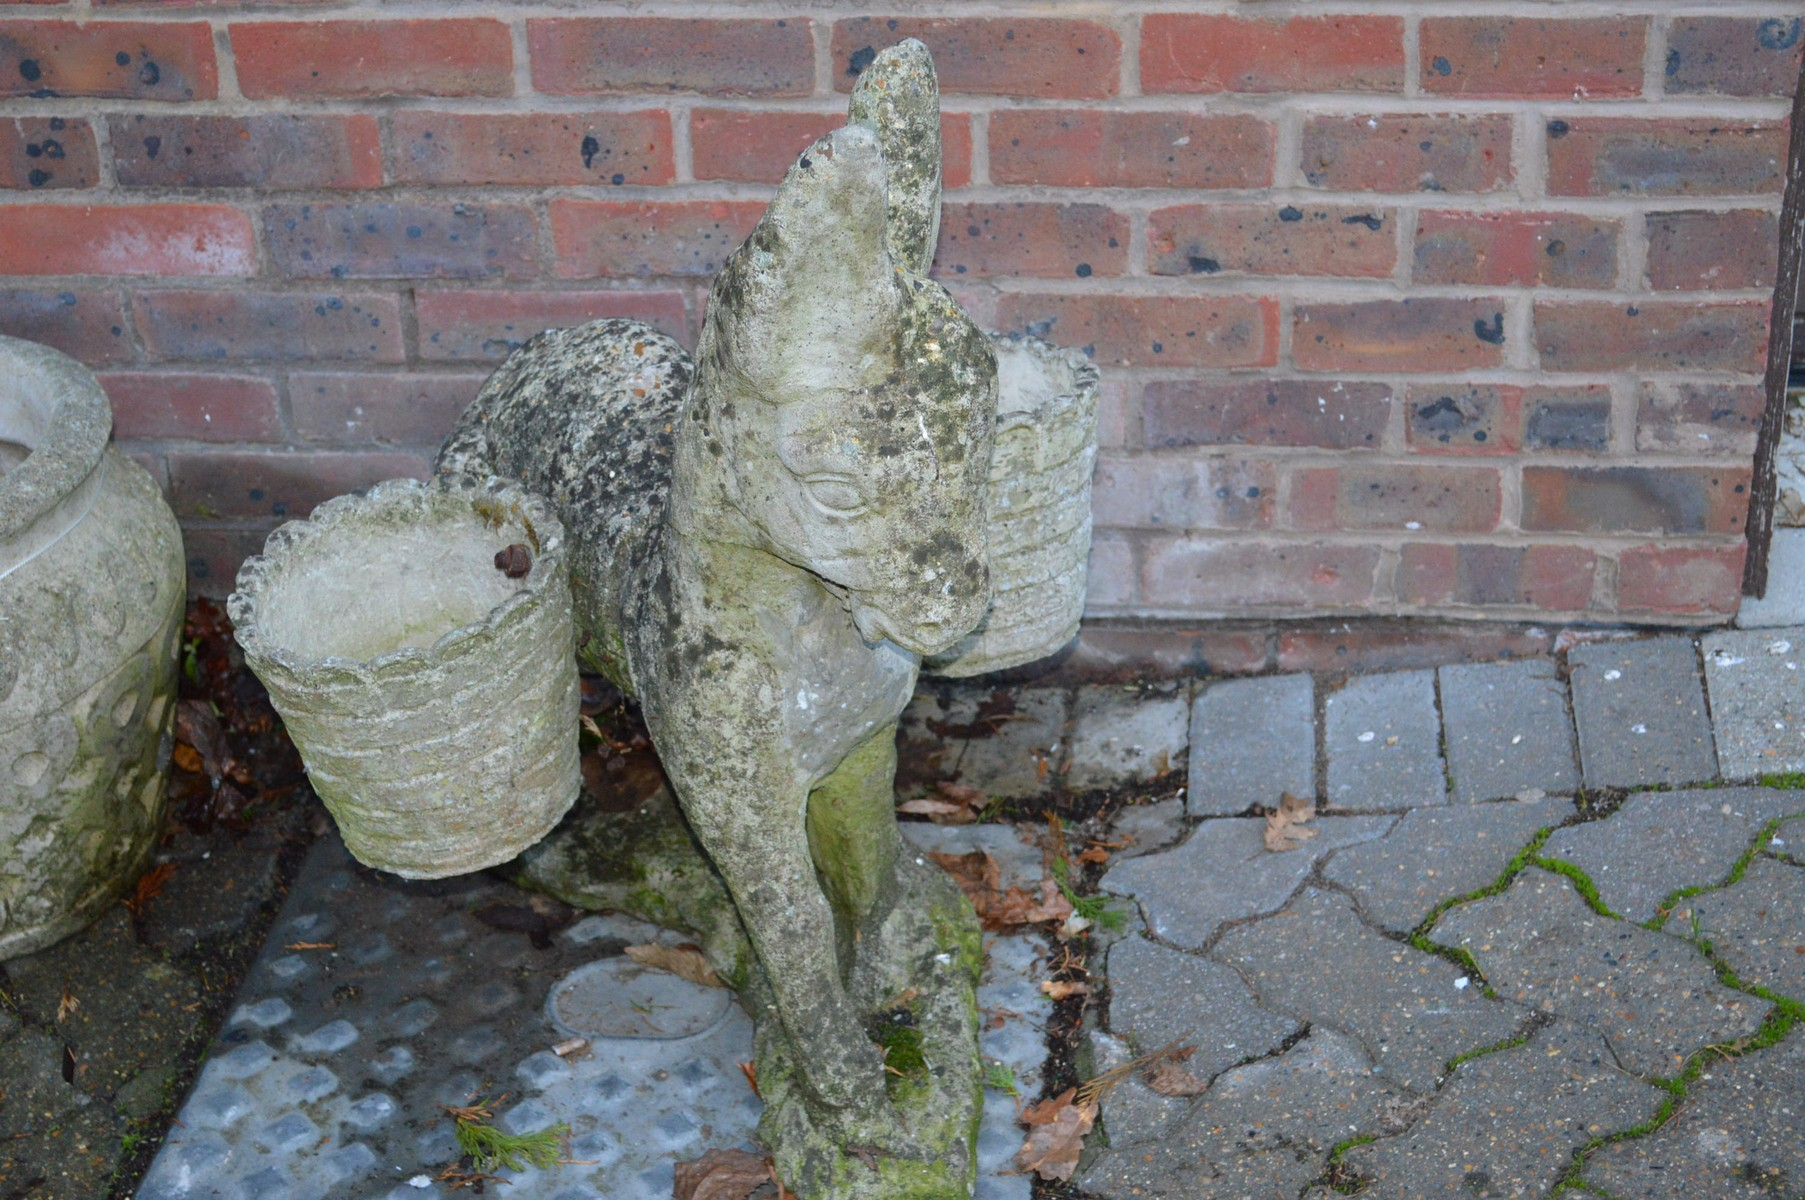 An unusual garden planter modelled as a donkey.